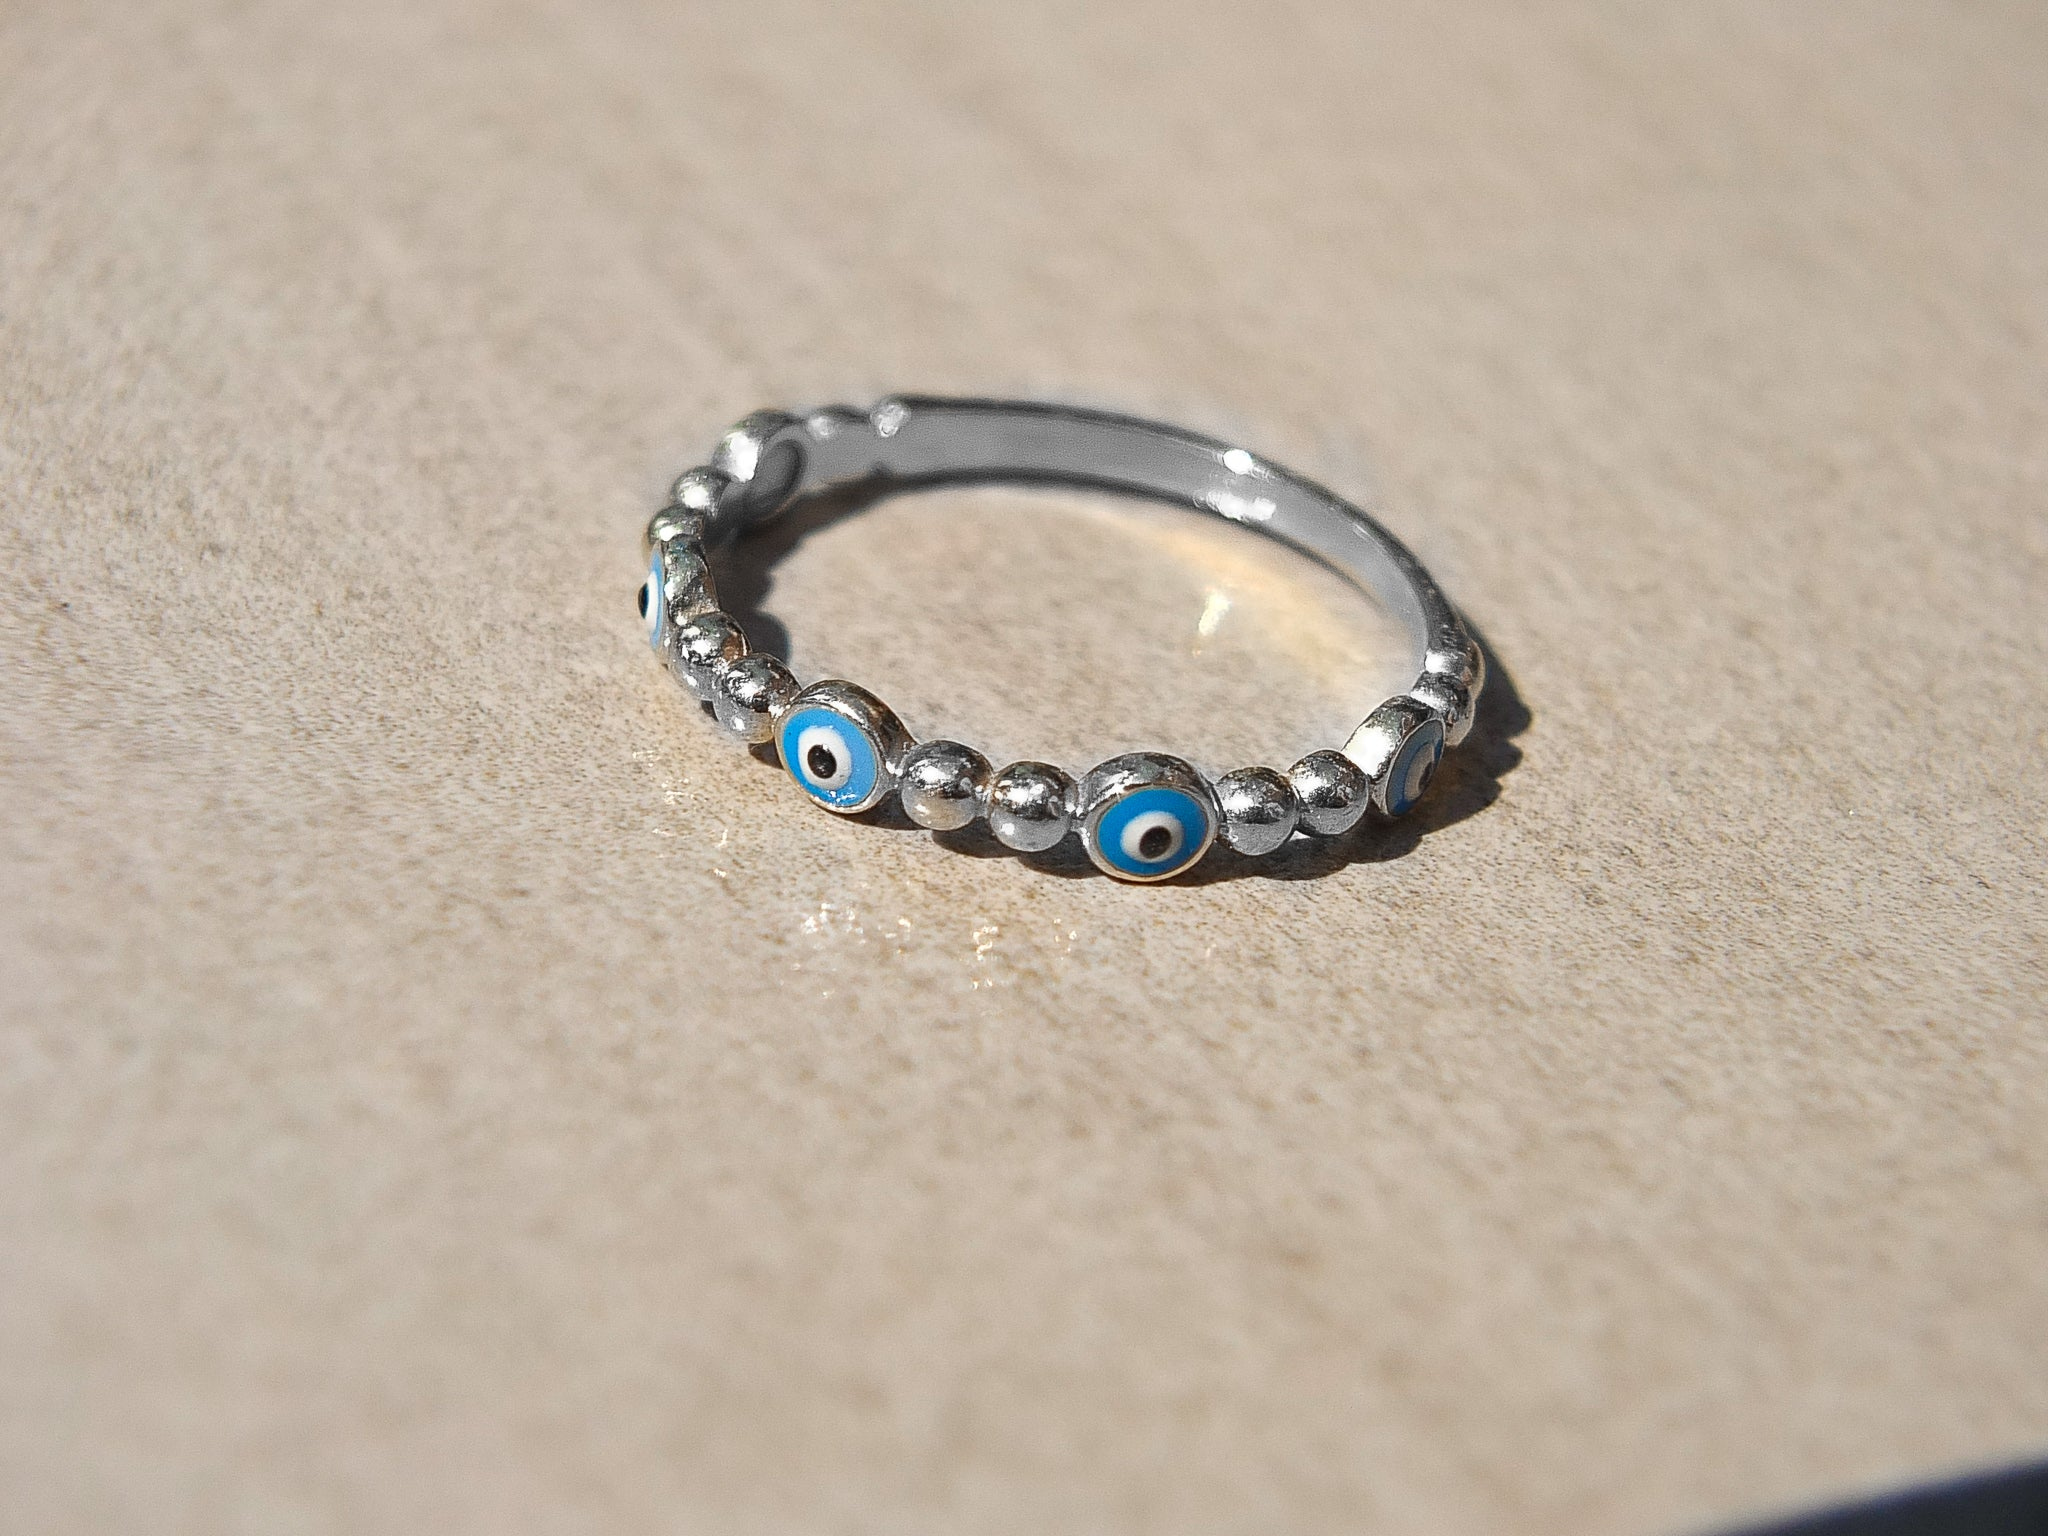 White gold evil eye ring toronto, buy white gold evil eye ring in toronto, buy white gold evil eye jewellery toronto, etsy white gold evil eye ring, made in canada evil eye rin